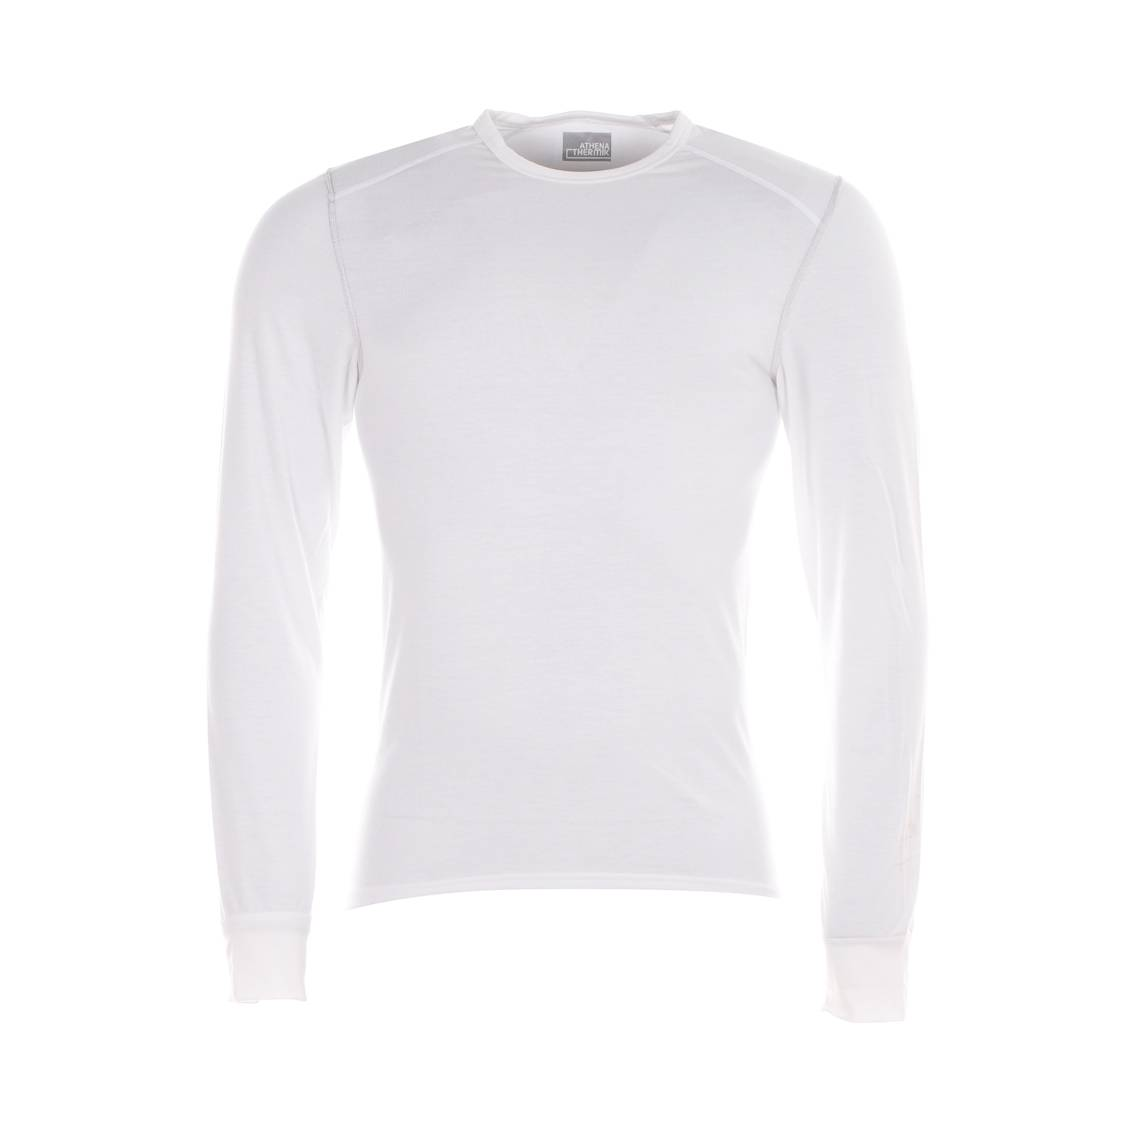 Tee-shirt manches longues Athena Thermik blanc, col rond, ultra chaud et  ultra ... 95ddefbe413